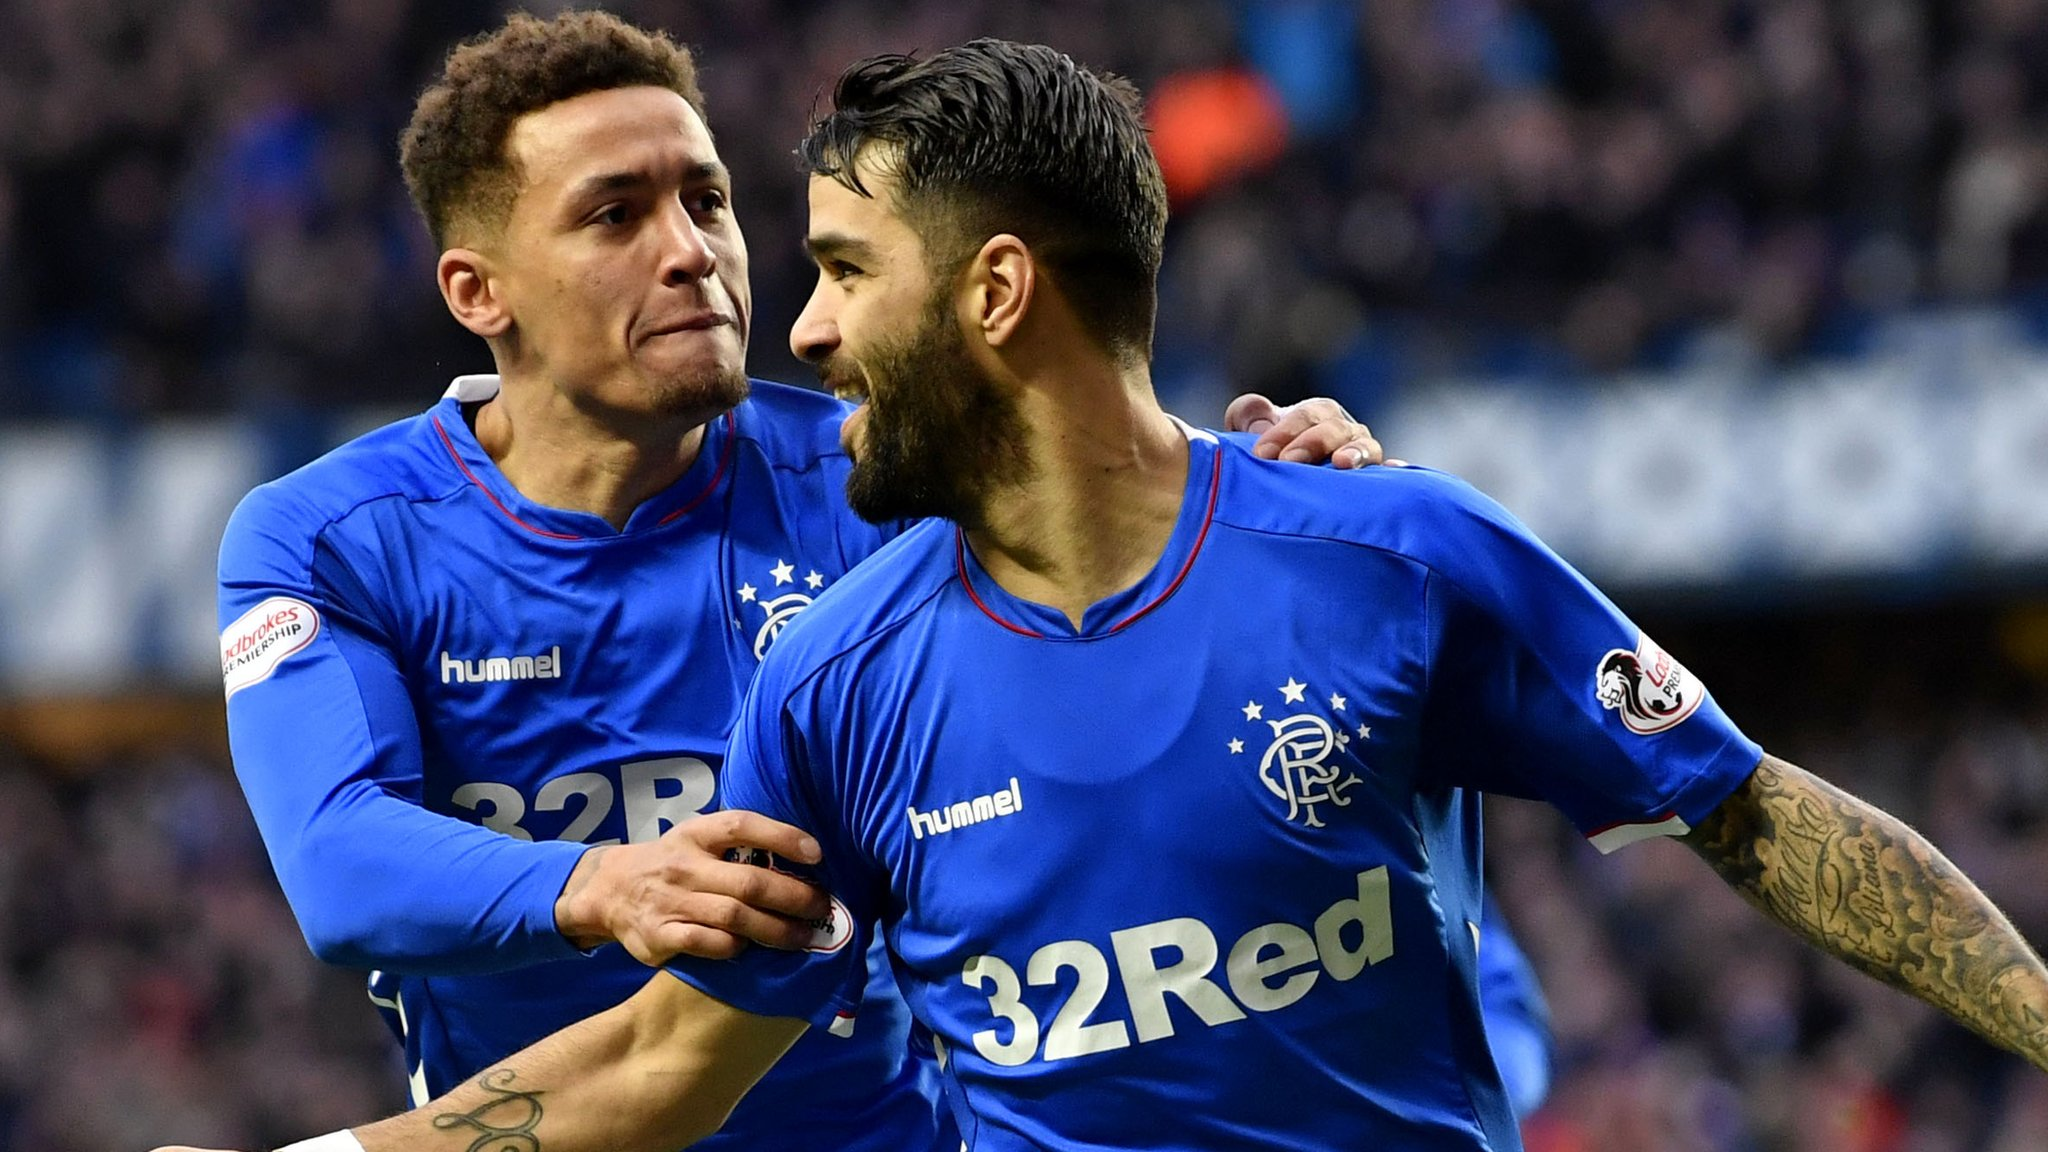 Rangers 1-0 Hamilton Academical: Steven Gerrard's side move top of Premiership